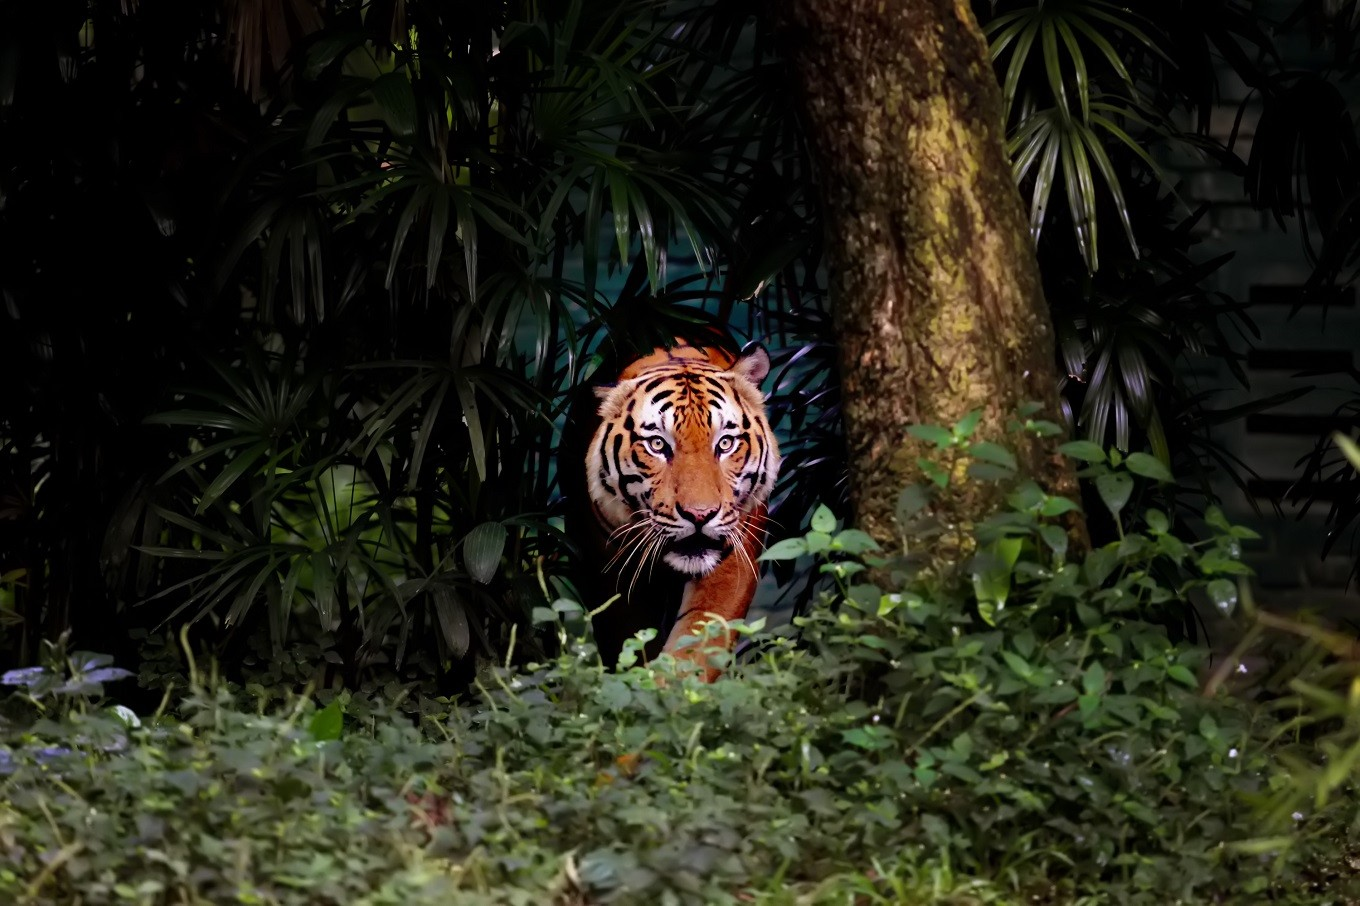 Protecting tiger habitats: Challenges, opportunities